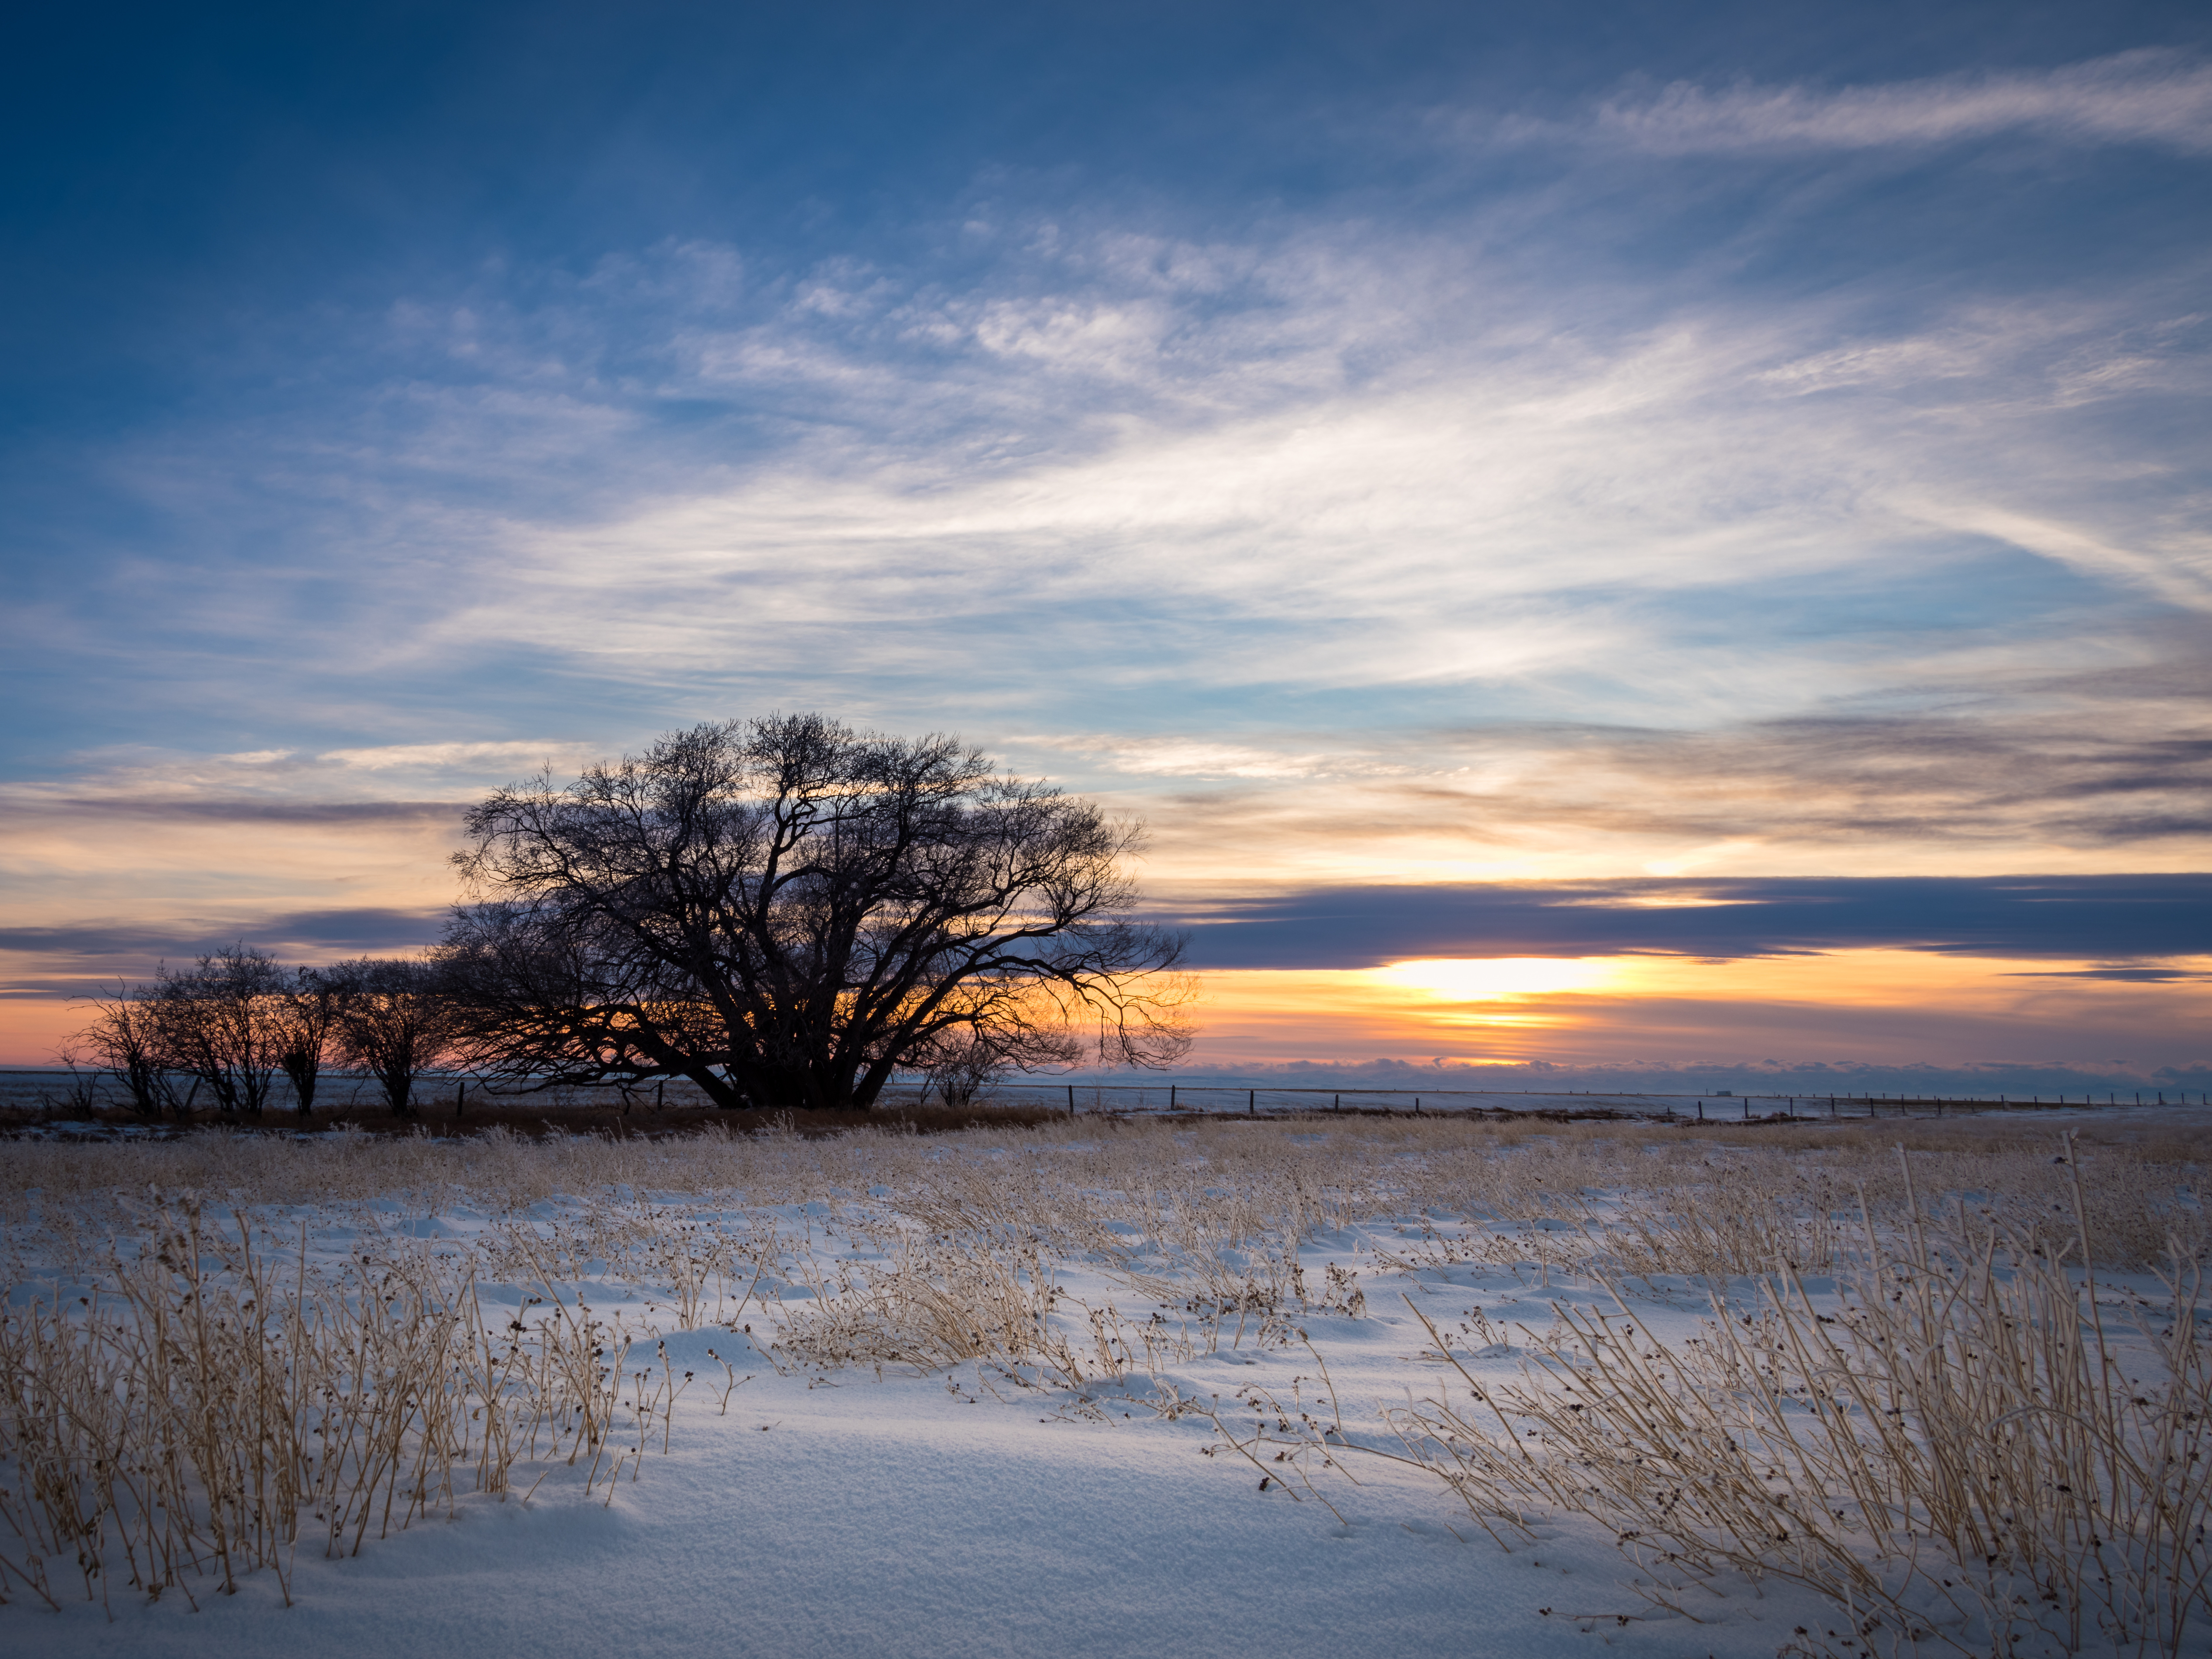 The sun sets over a snowy field